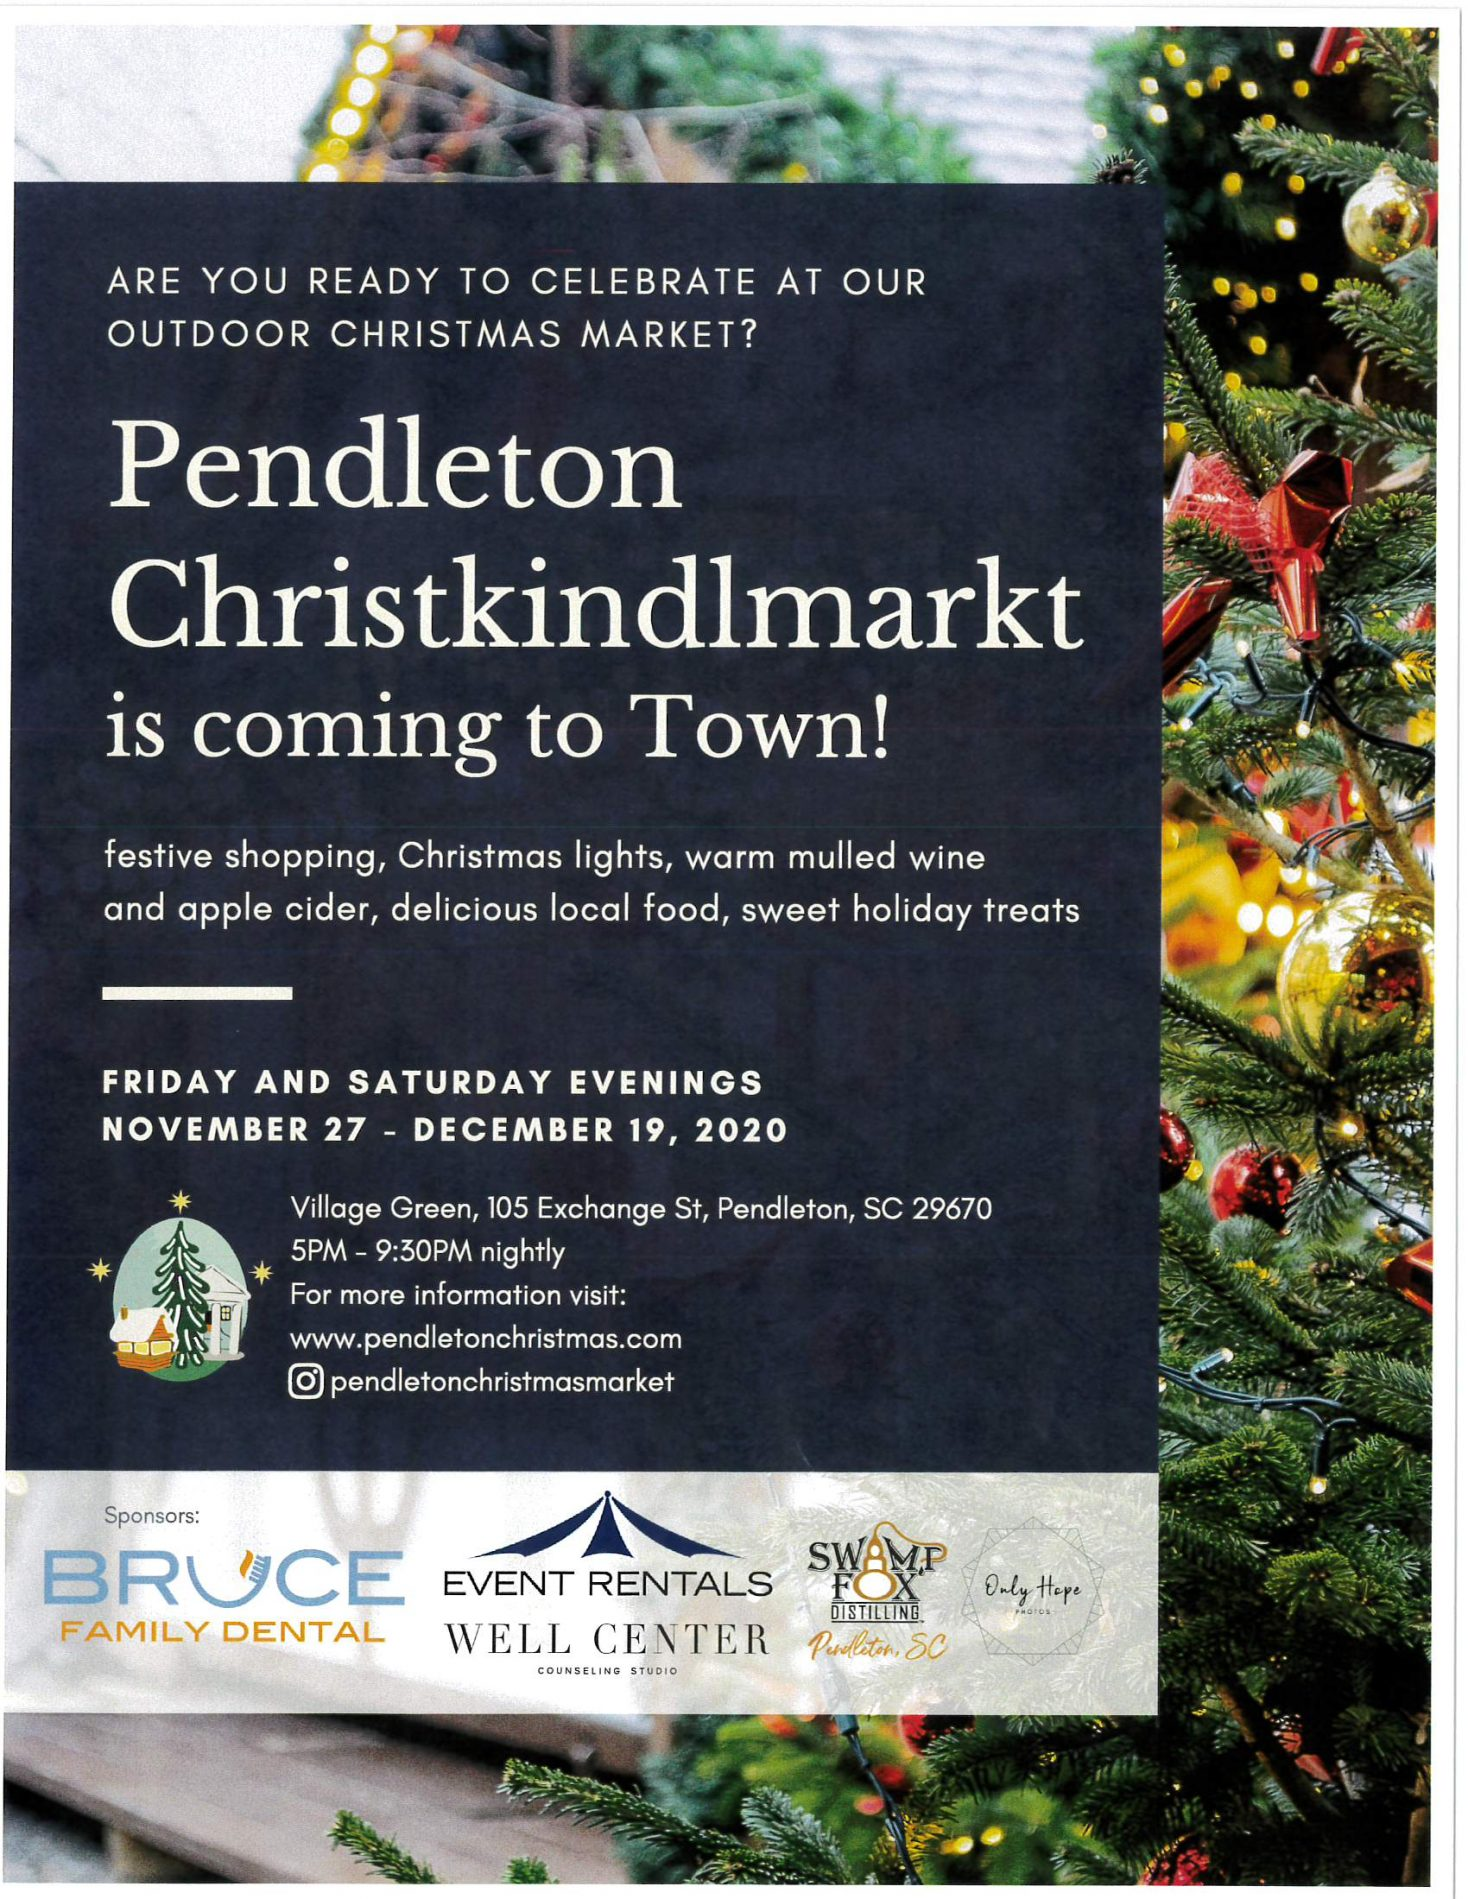 Pendleton Christkindlmarkt is coming to Town!